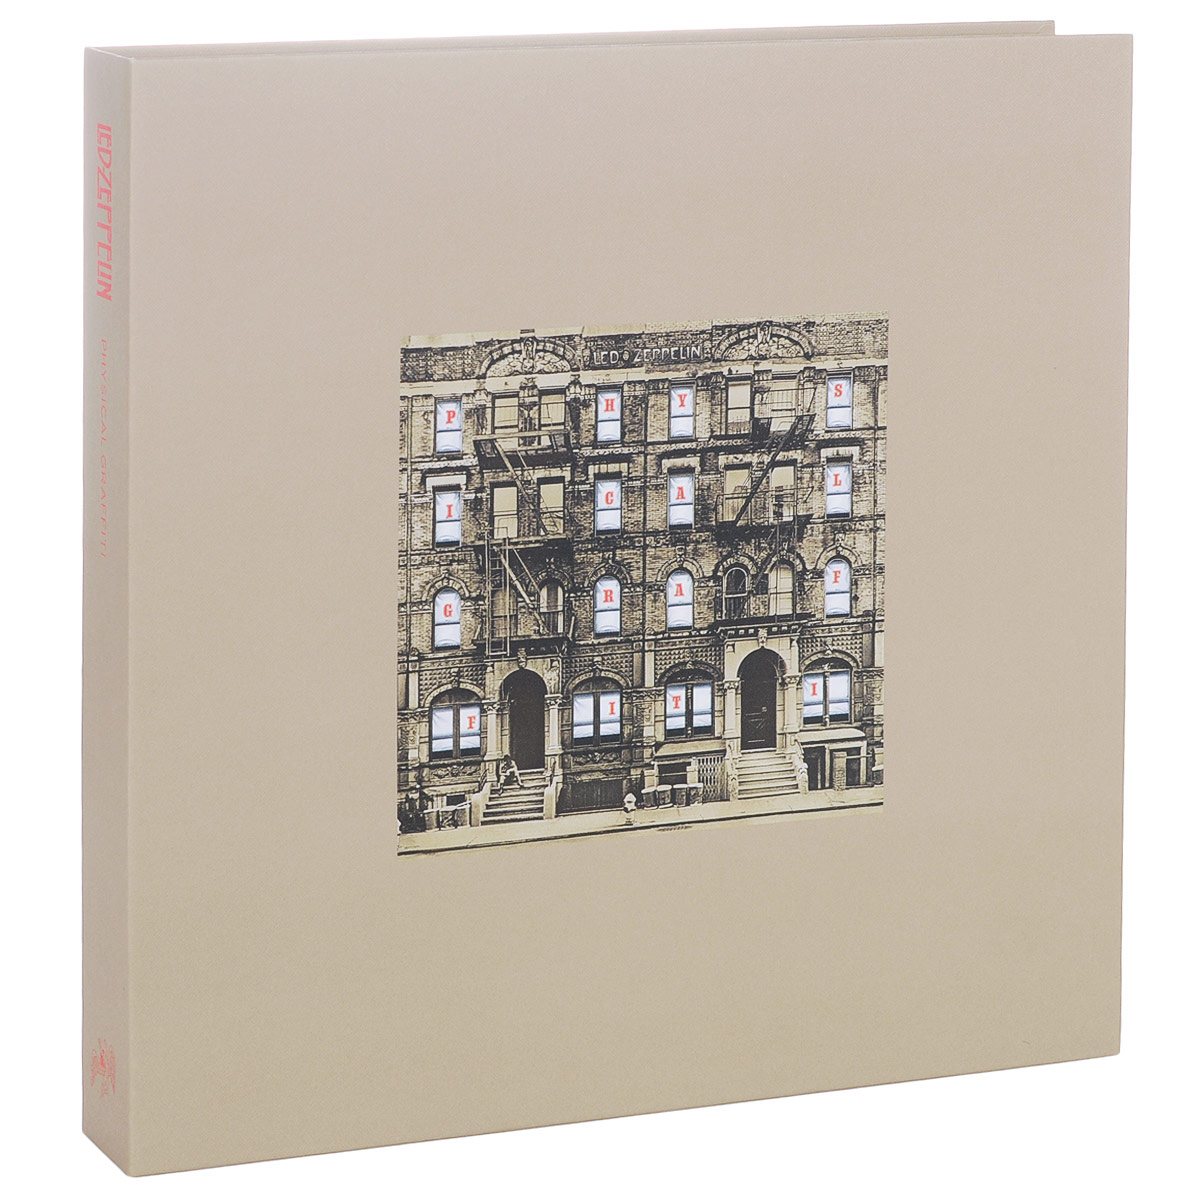 Led Zeppelin Led Zeppelin. Physical Graffiti. Super Deluxe Edition (3 CD + 3 LP) пылесборник для сухой уборки filtero sam 01 4 comfort